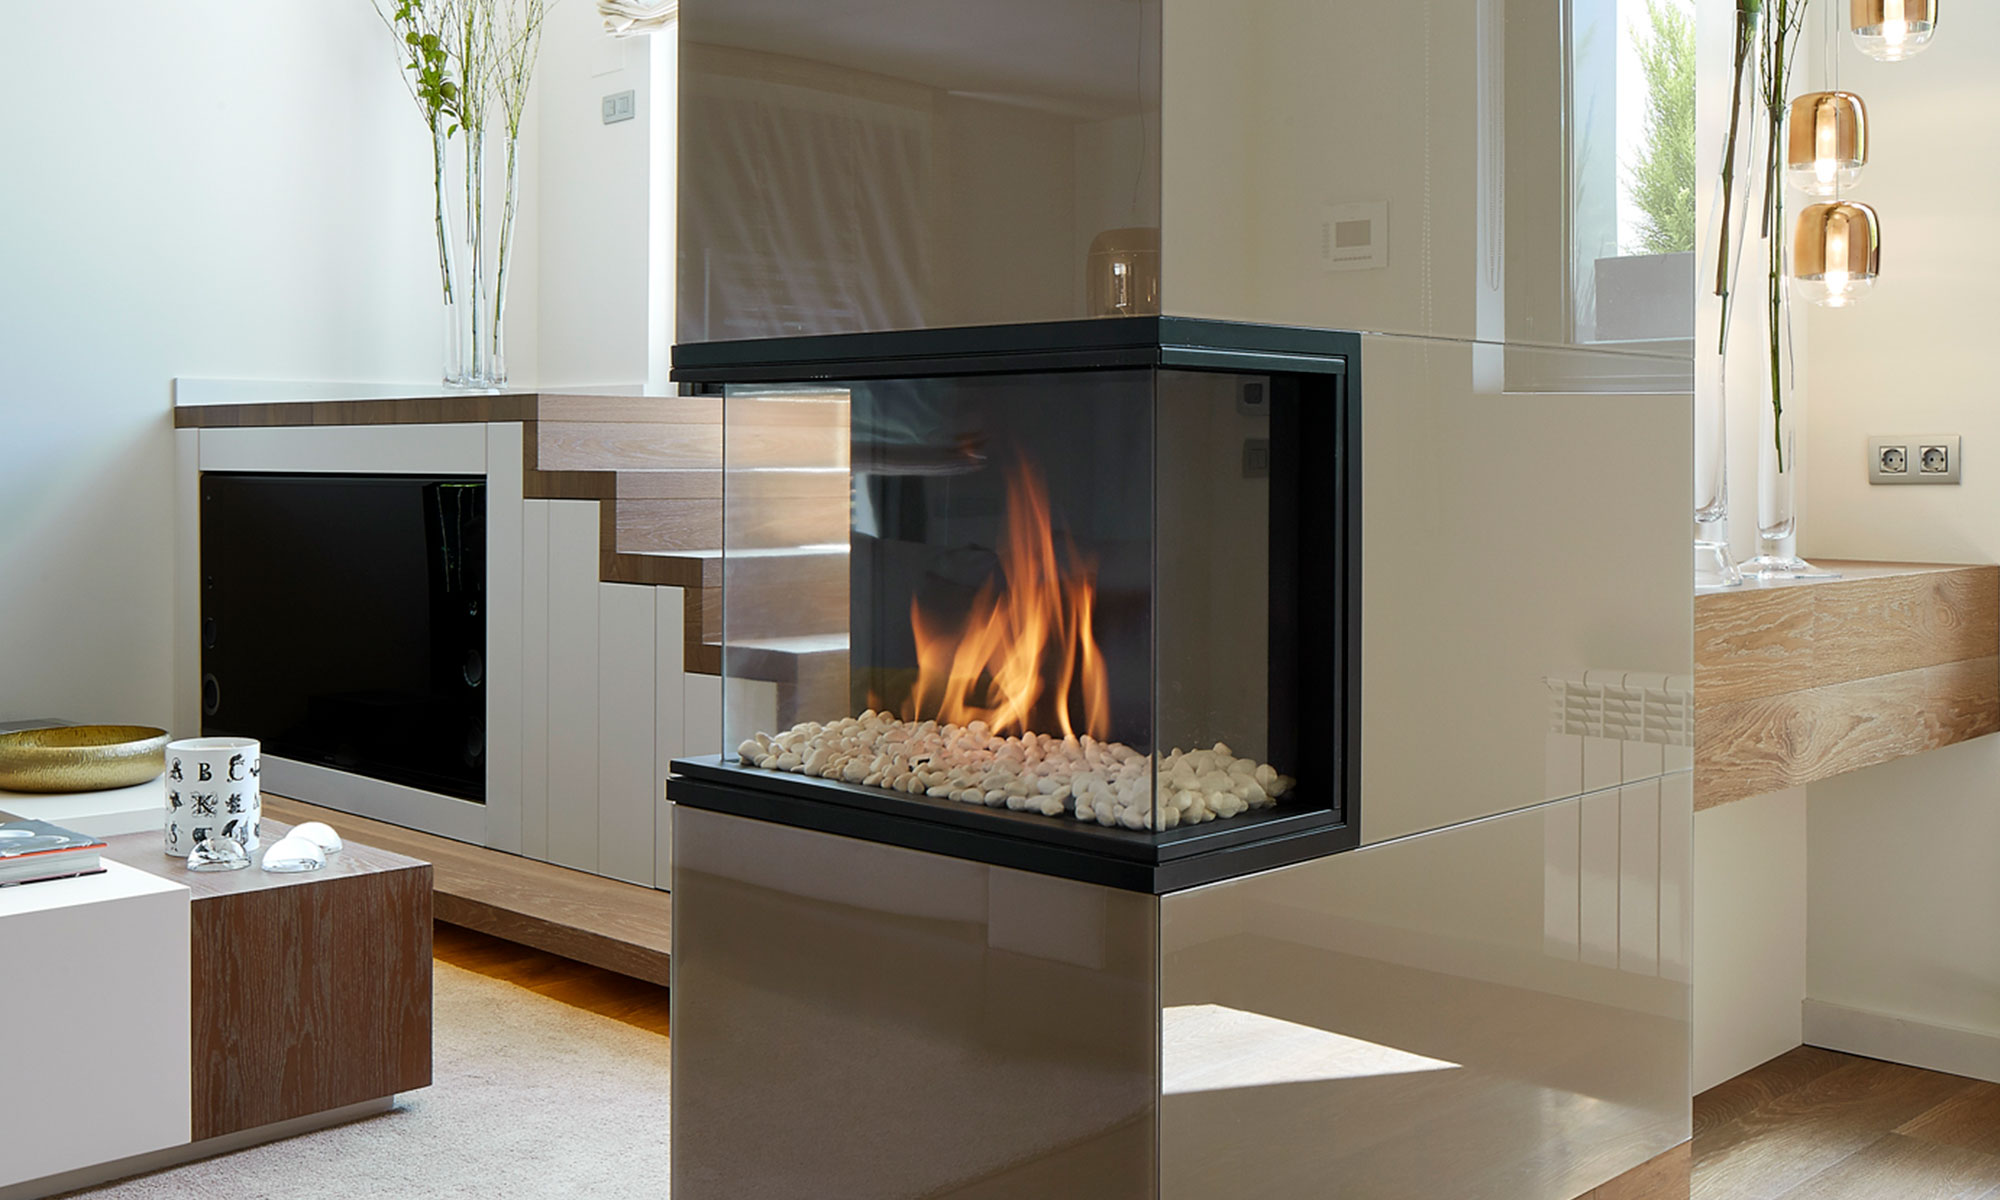 Fireplace design column | Molins Design interior design